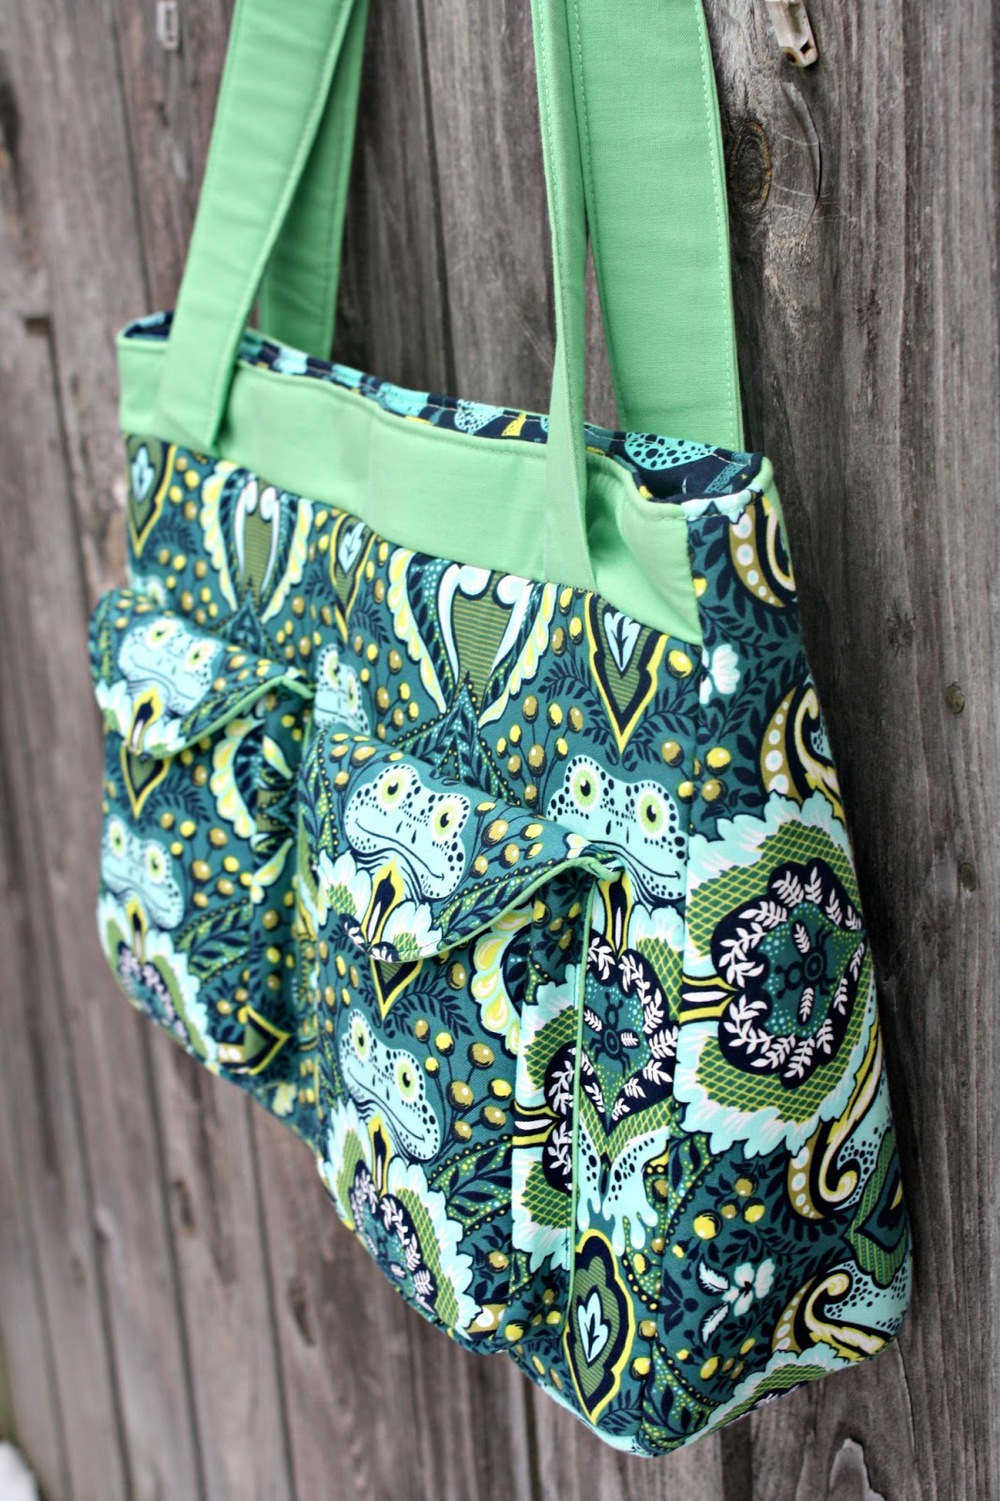 sew sweetness bag pattern giveaway